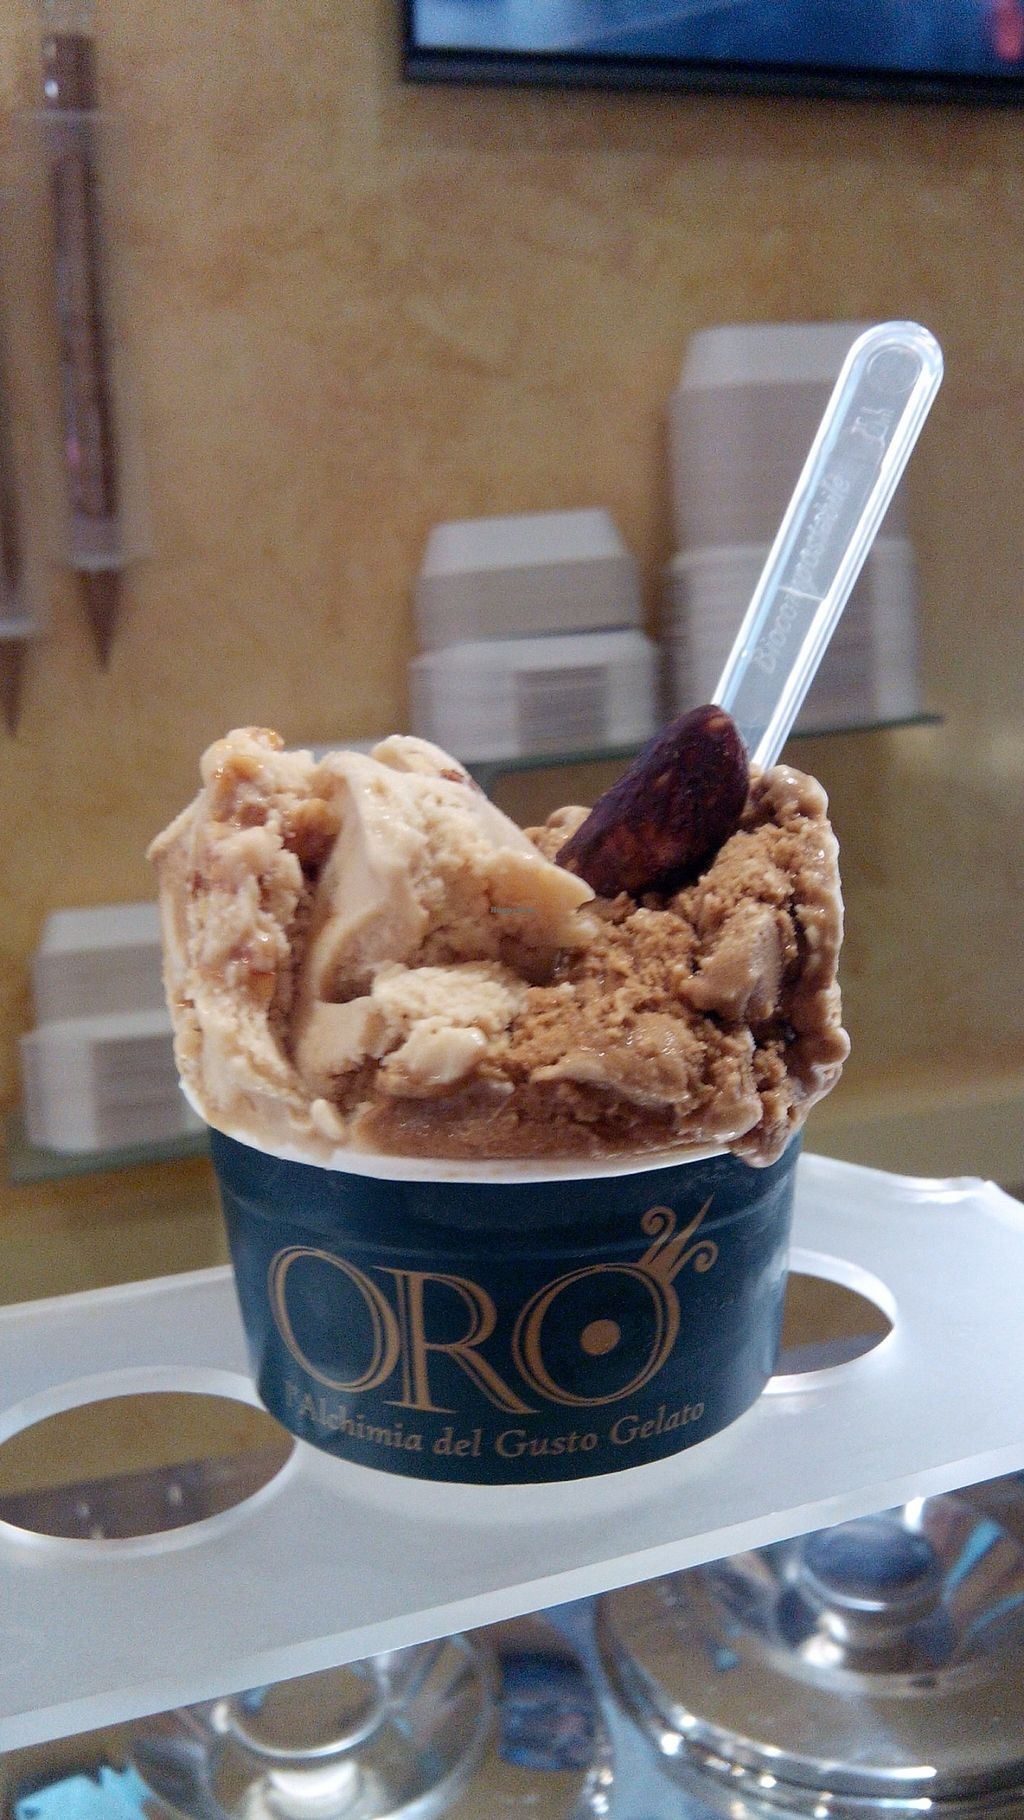 """Photo of ORO Srl  by <a href=""""/members/profile/Salemya"""">Salemya</a> <br/>Liquorice and Mandorlato....so good together! <br/> September 6, 2015  - <a href='/contact/abuse/image/62642/116538'>Report</a>"""